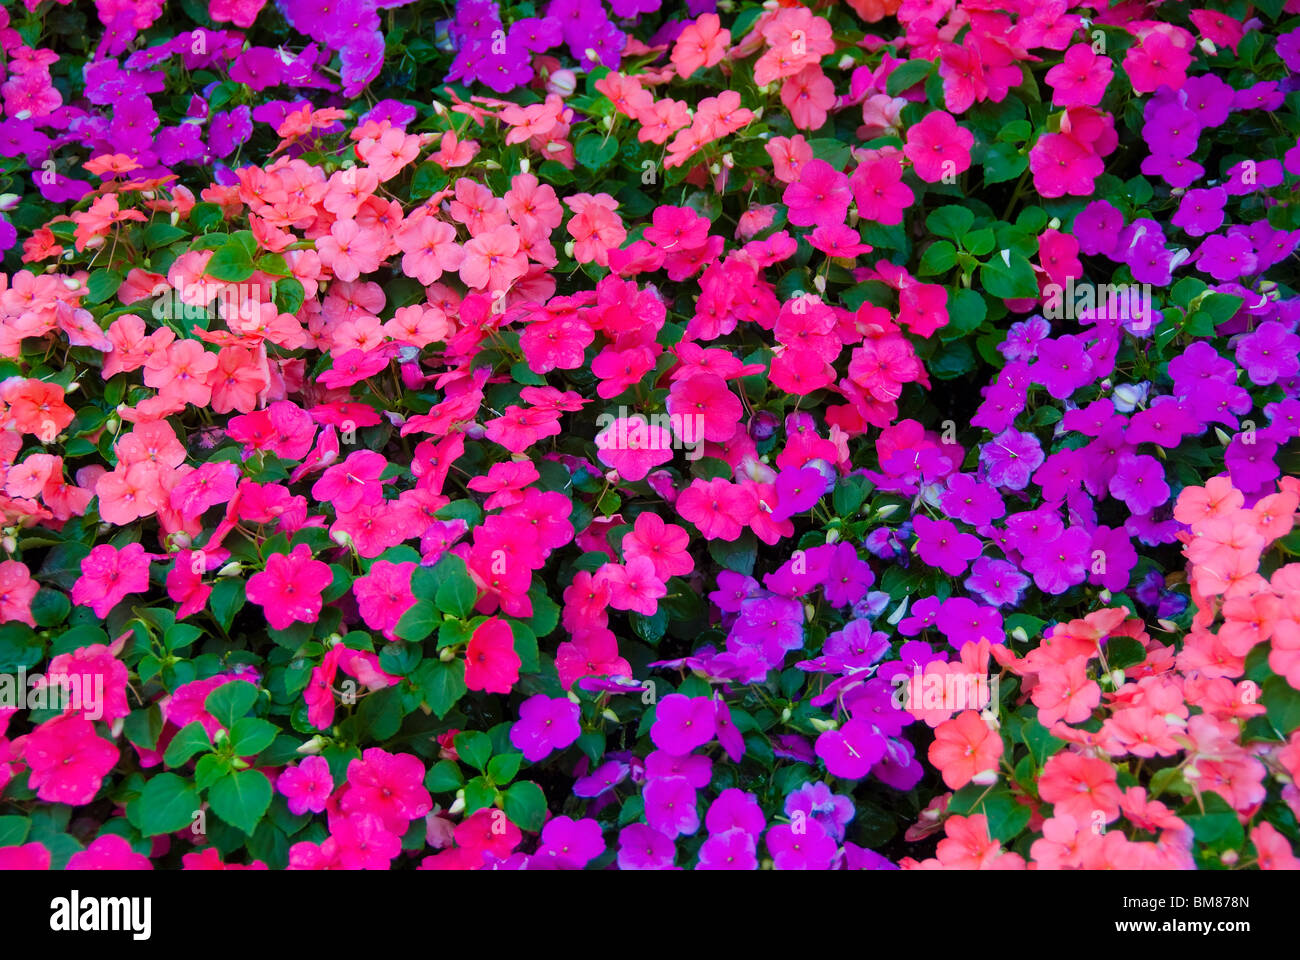 Impatiens flowers in sidewalk planters on Las Olas Boulevard in city Stock Ph